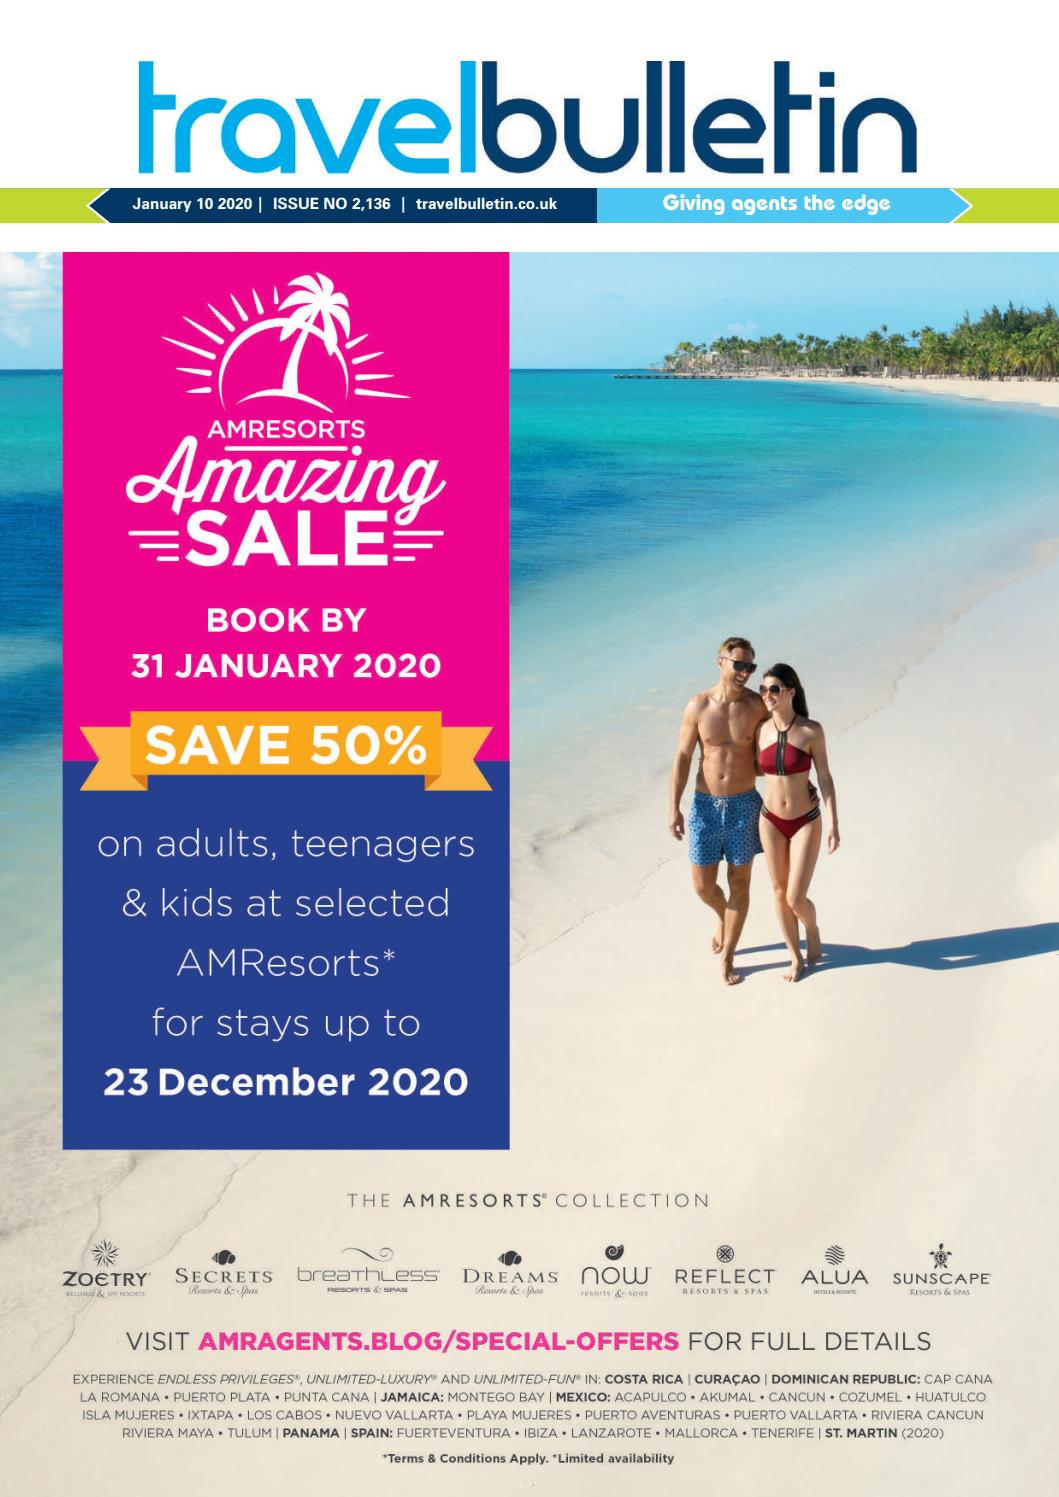 Package Tours From Chicago To Curacao Christmas 2021 Travel Bulletin 10th January 2020 By Alain Charles Publishing Issuu